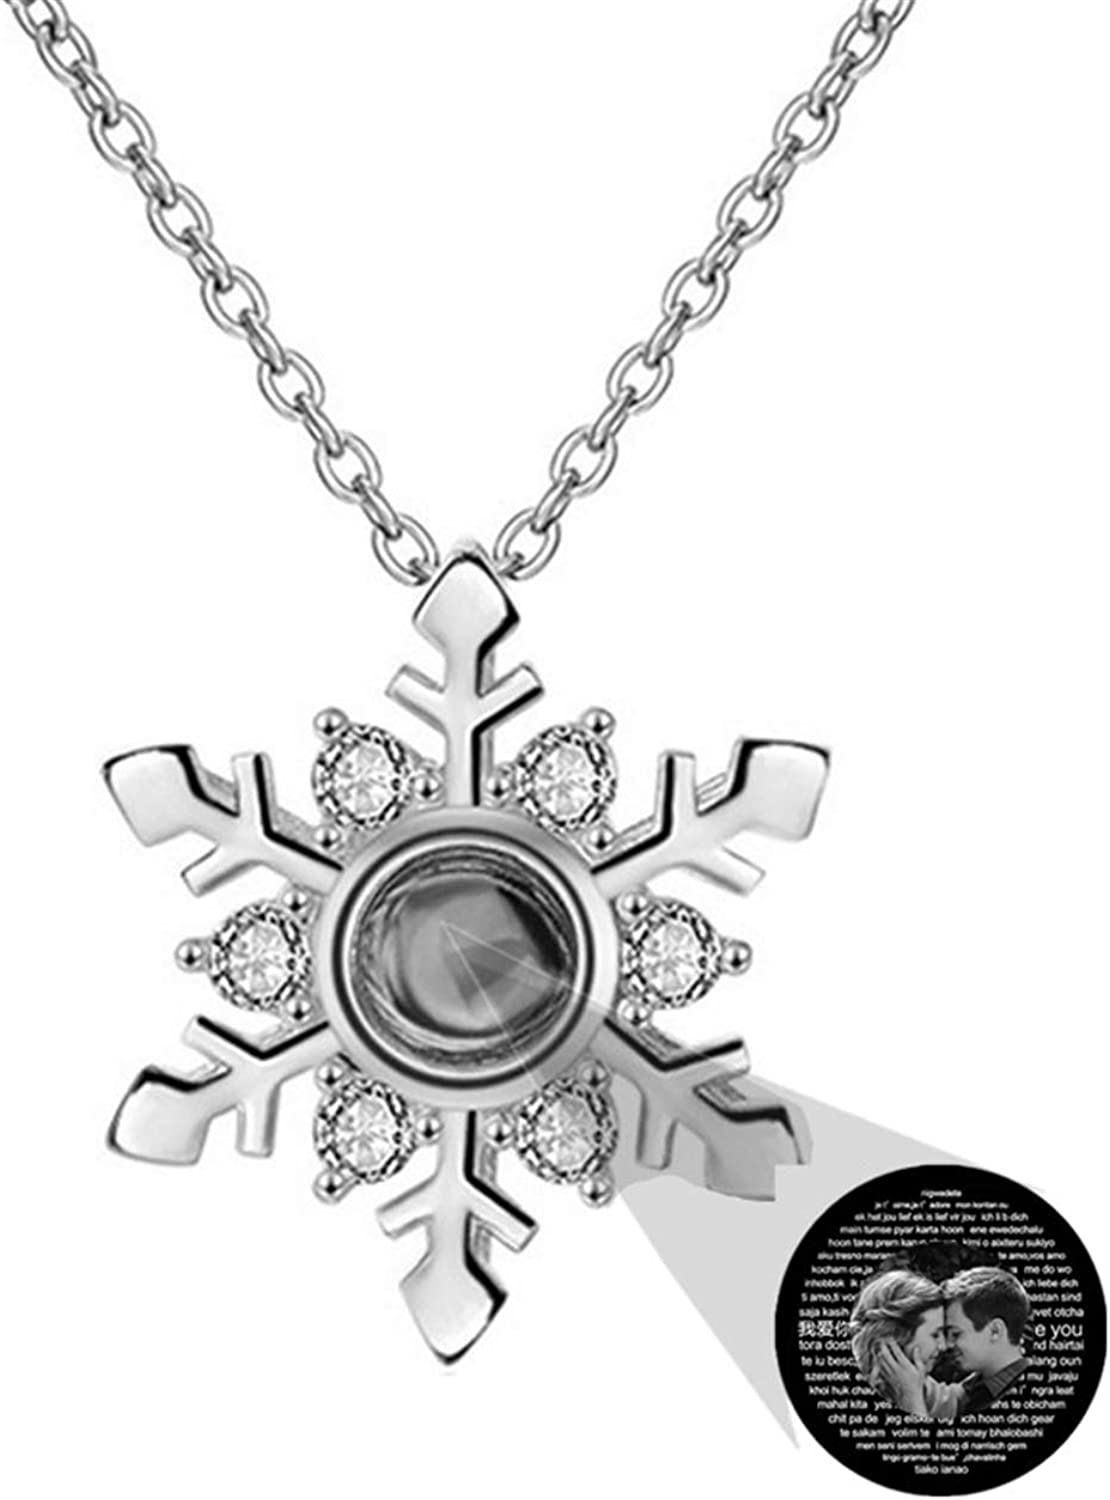 Personalized Popular product Photo Necklace 100 Kinds You Love Pro Popularity Of I